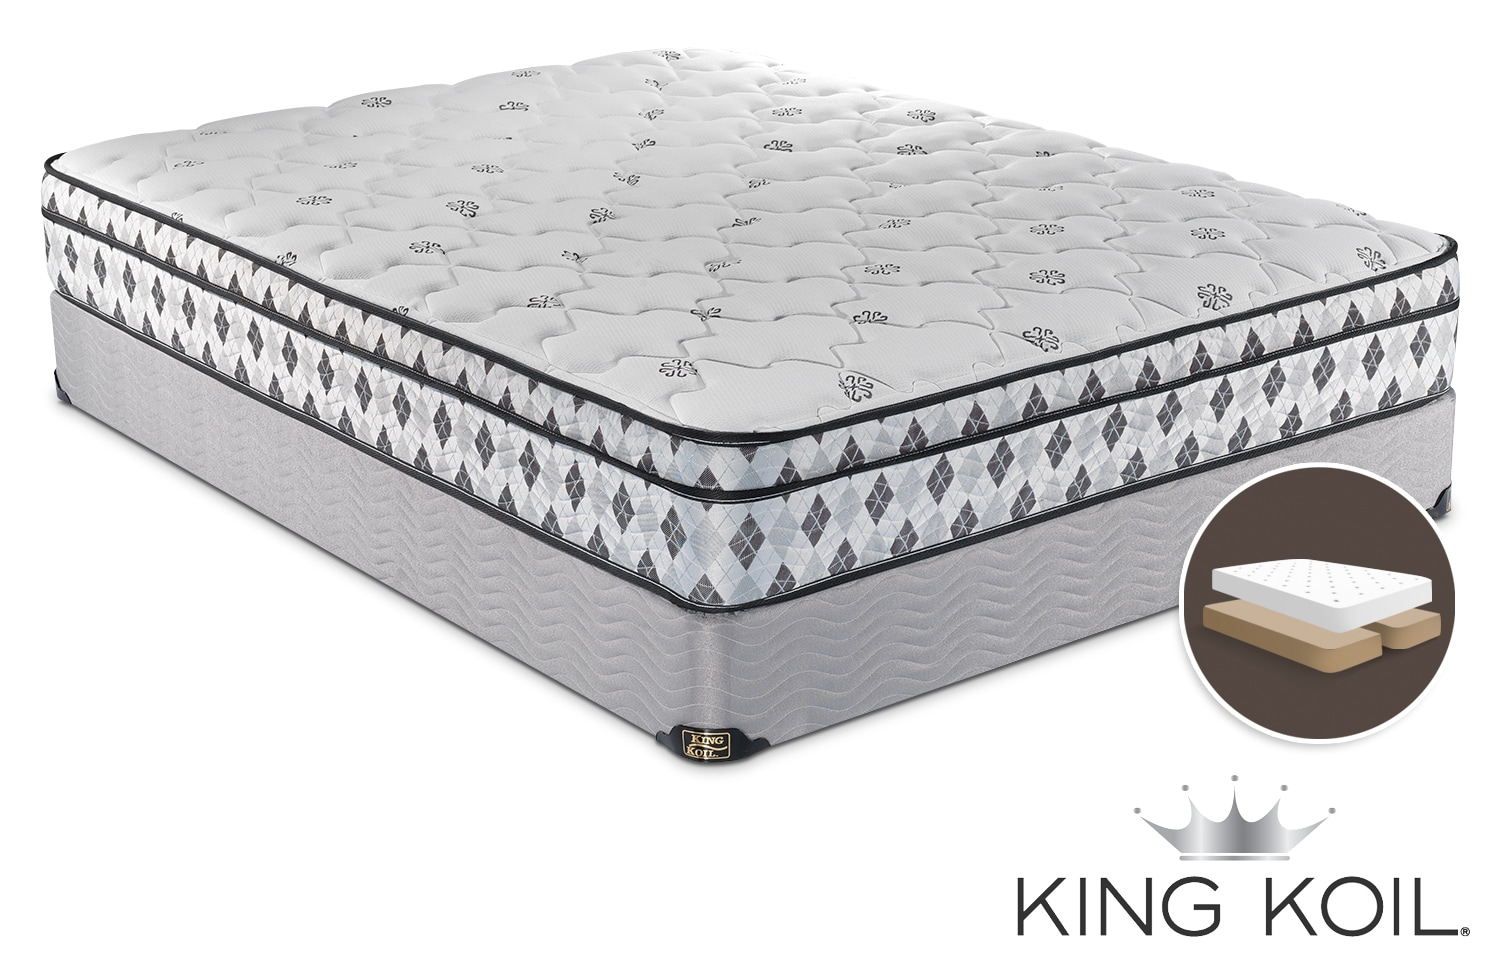 King Koil Heavenly Nights Ens. Matelas/sommier très grand